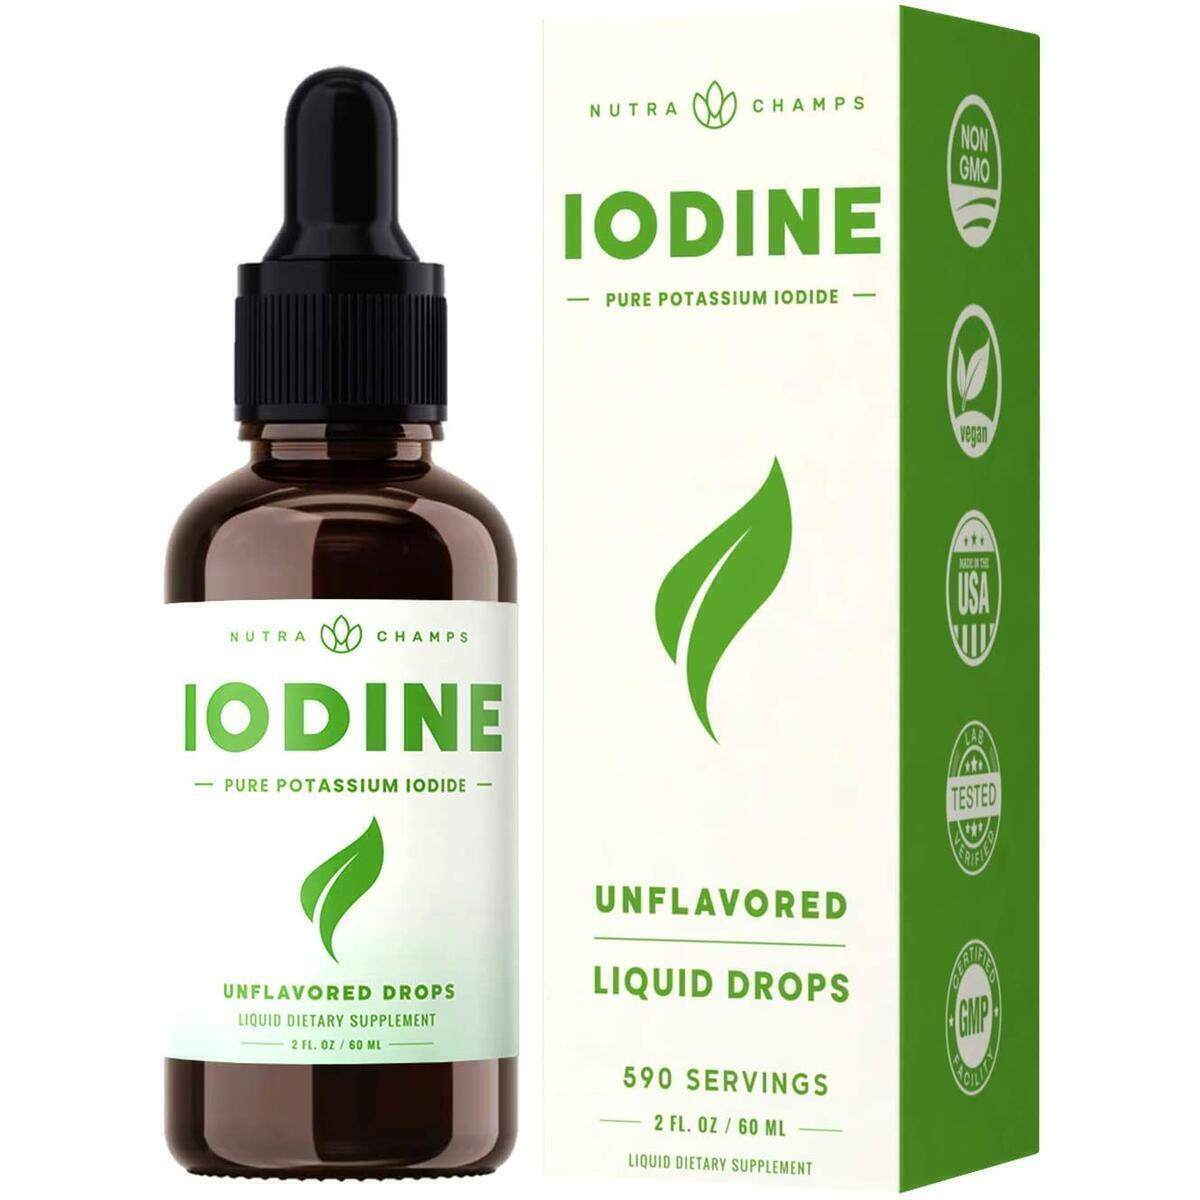 Iodine Drops [Double Size] Vegan Liquid Supplement - Healthy Thyroid, Hormones & Weight - Tasteless Solution, Better Absorption Than Pill, Tablet or Powder - 2oz Tincture 590 Servings